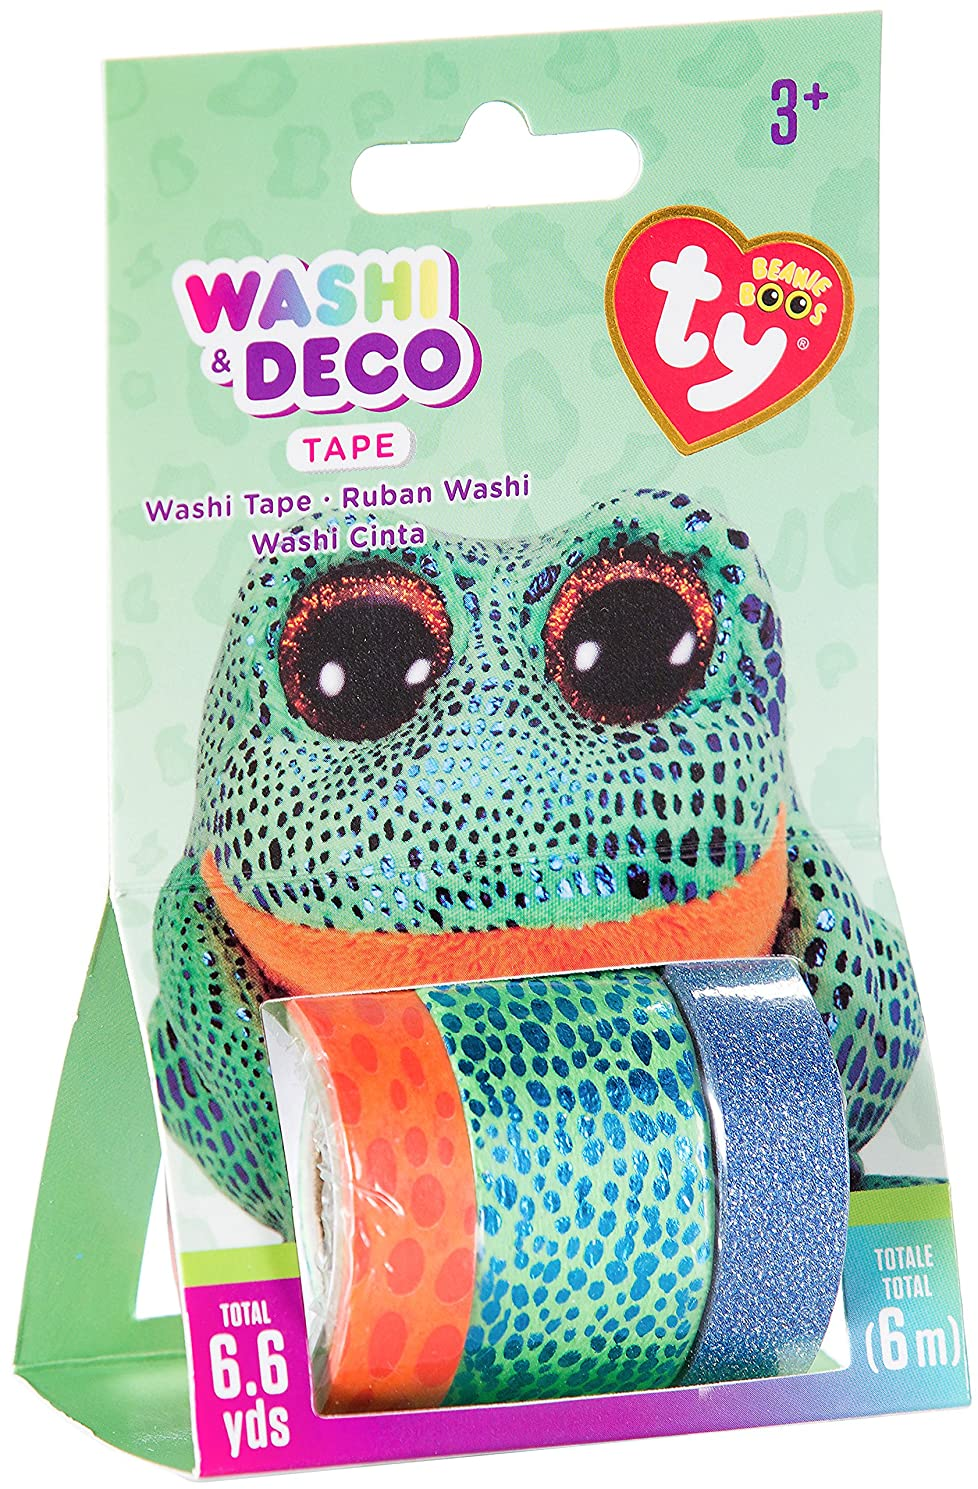 Darice TY Beanie Boo Speckles Sococles The Frog Washi Tape